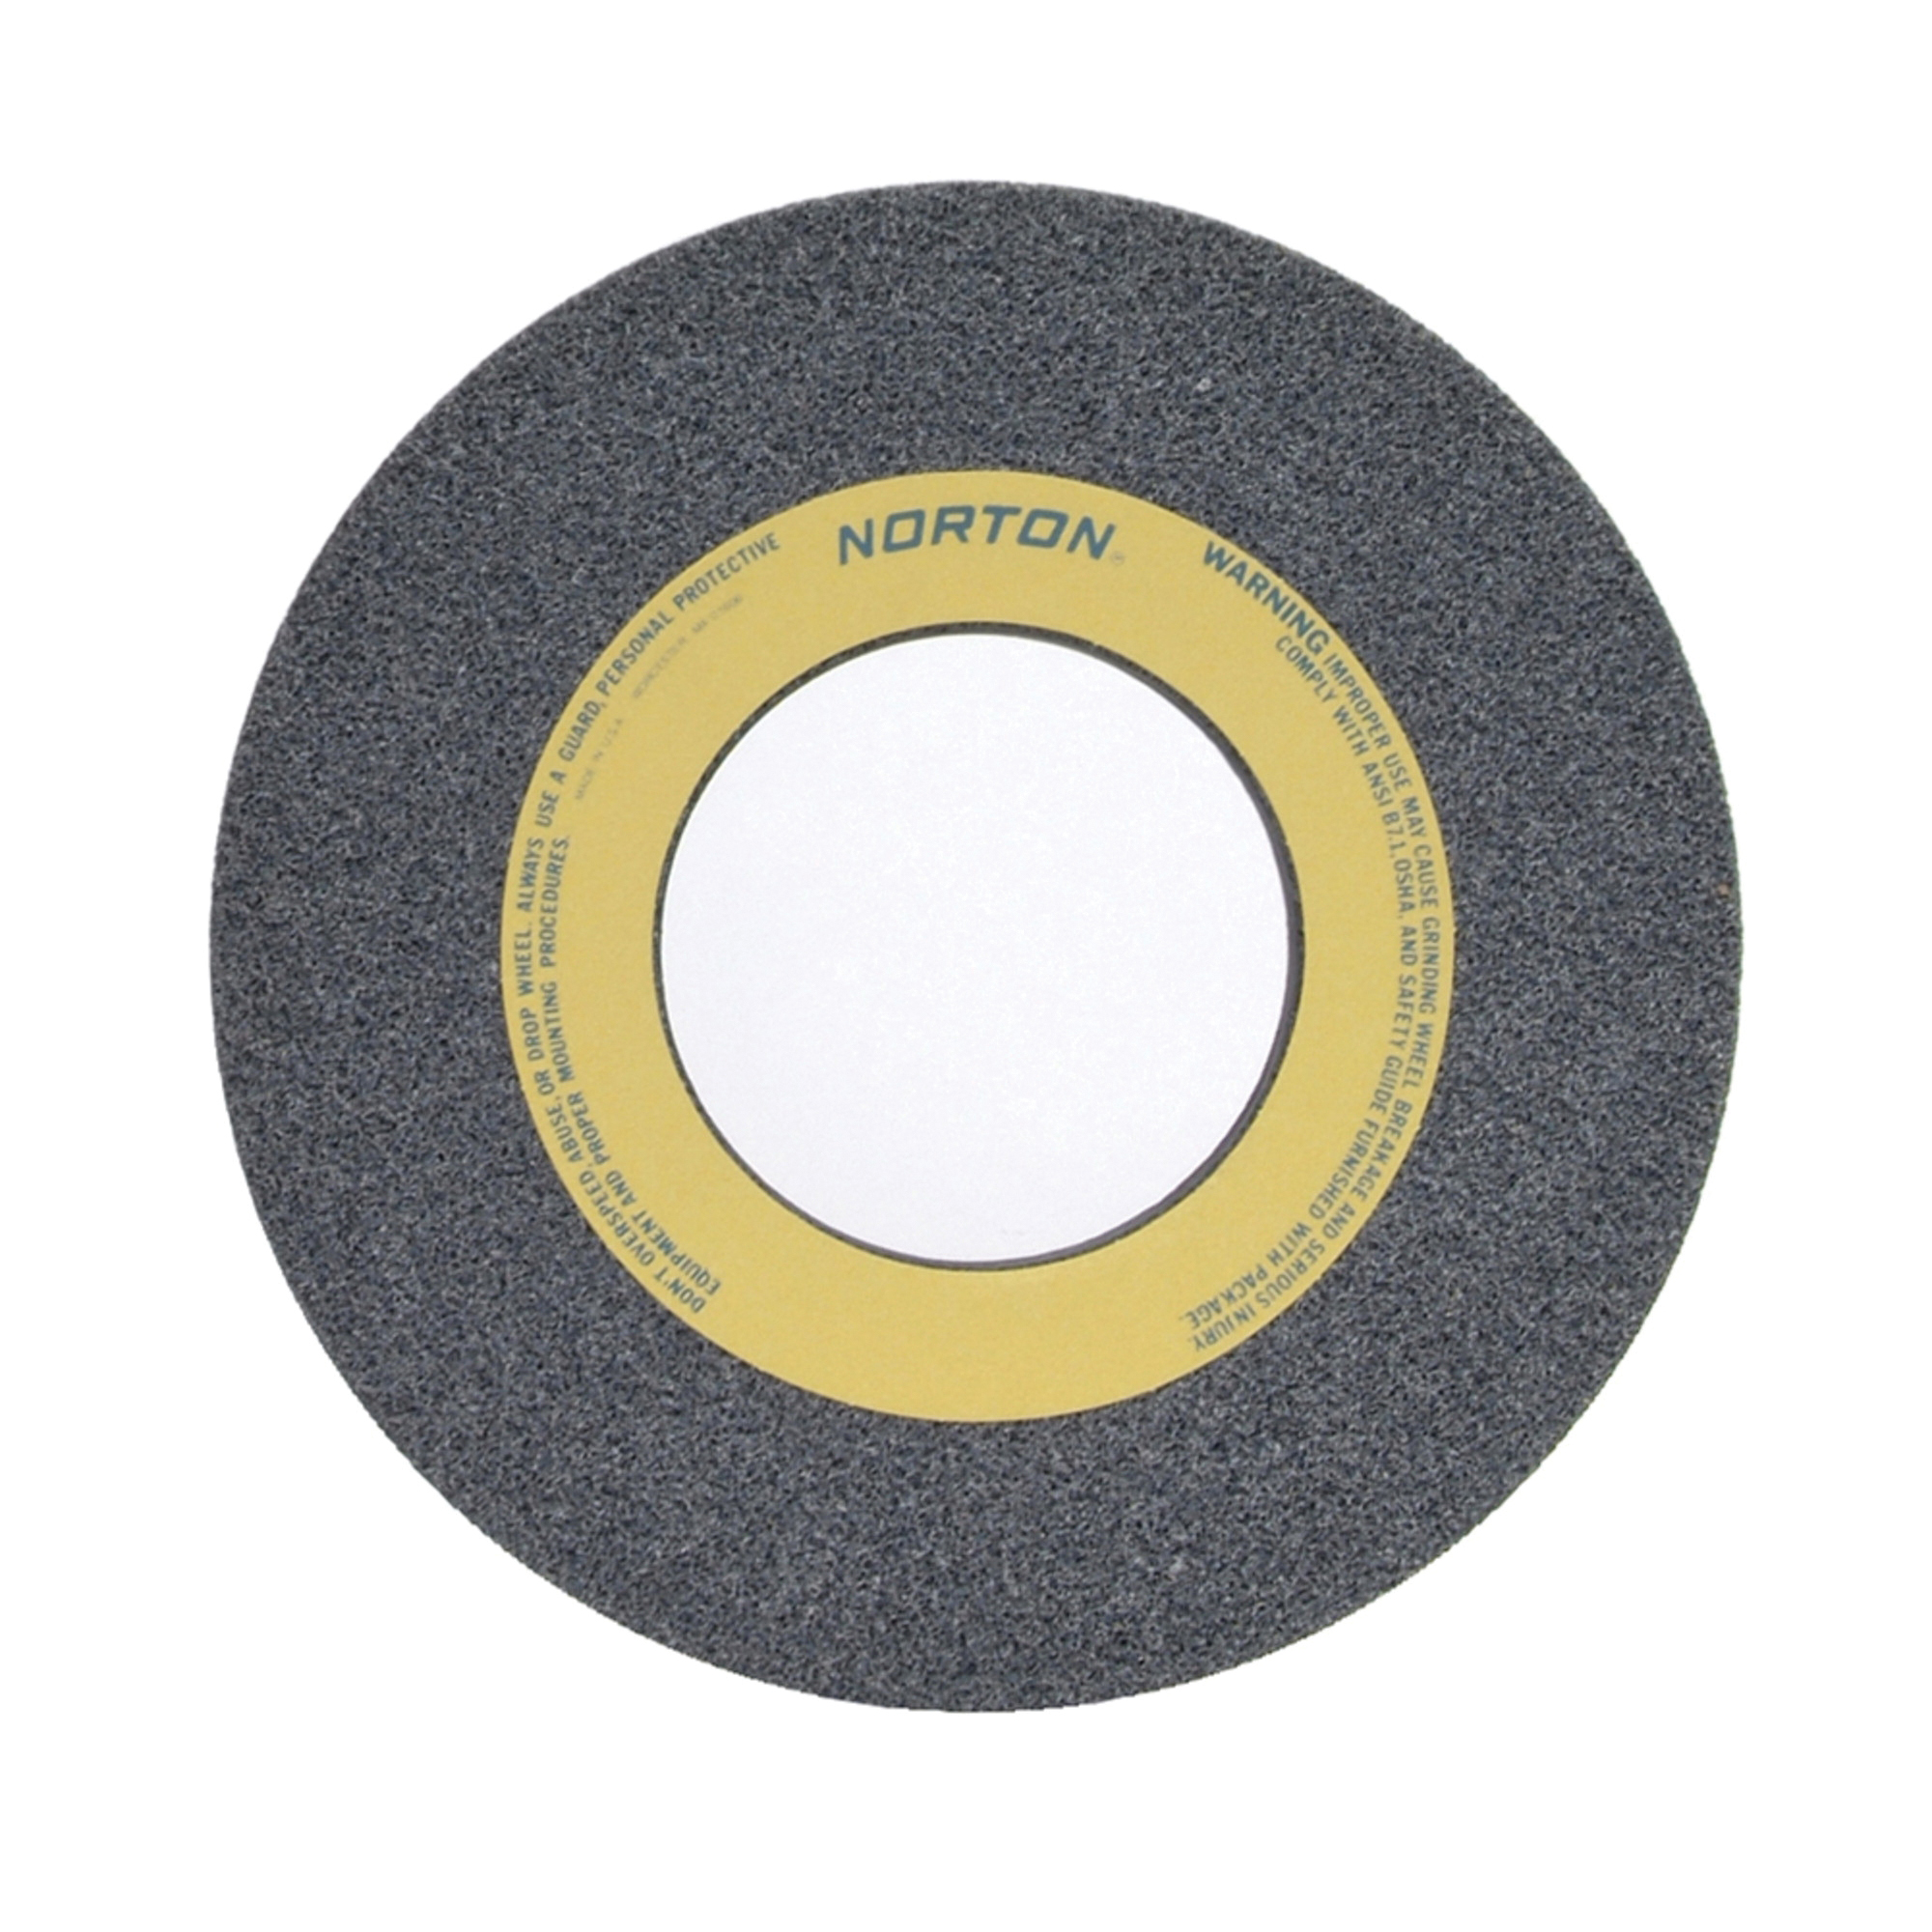 Norton® 66253364342 32A Straight Toolroom Wheel, 14 in Dia x 1-1/2 in THK, 5 in Center Hole, 60 Grit, Aluminum Oxide Abrasive